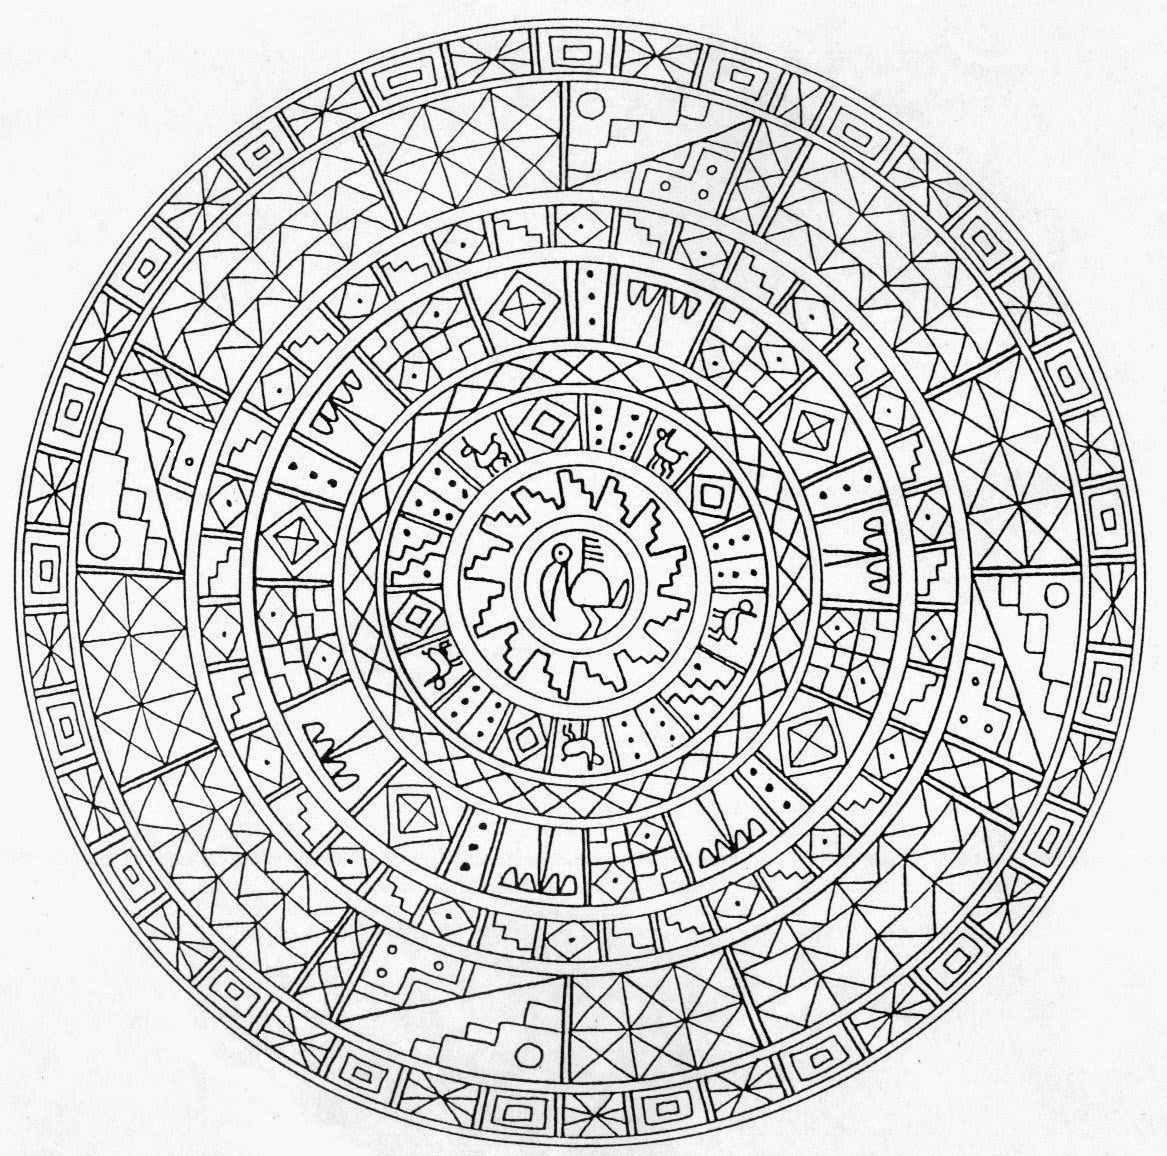 mandala coloring pages for adults free printable mandala coloring pages for adults best mandala adults pages coloring for